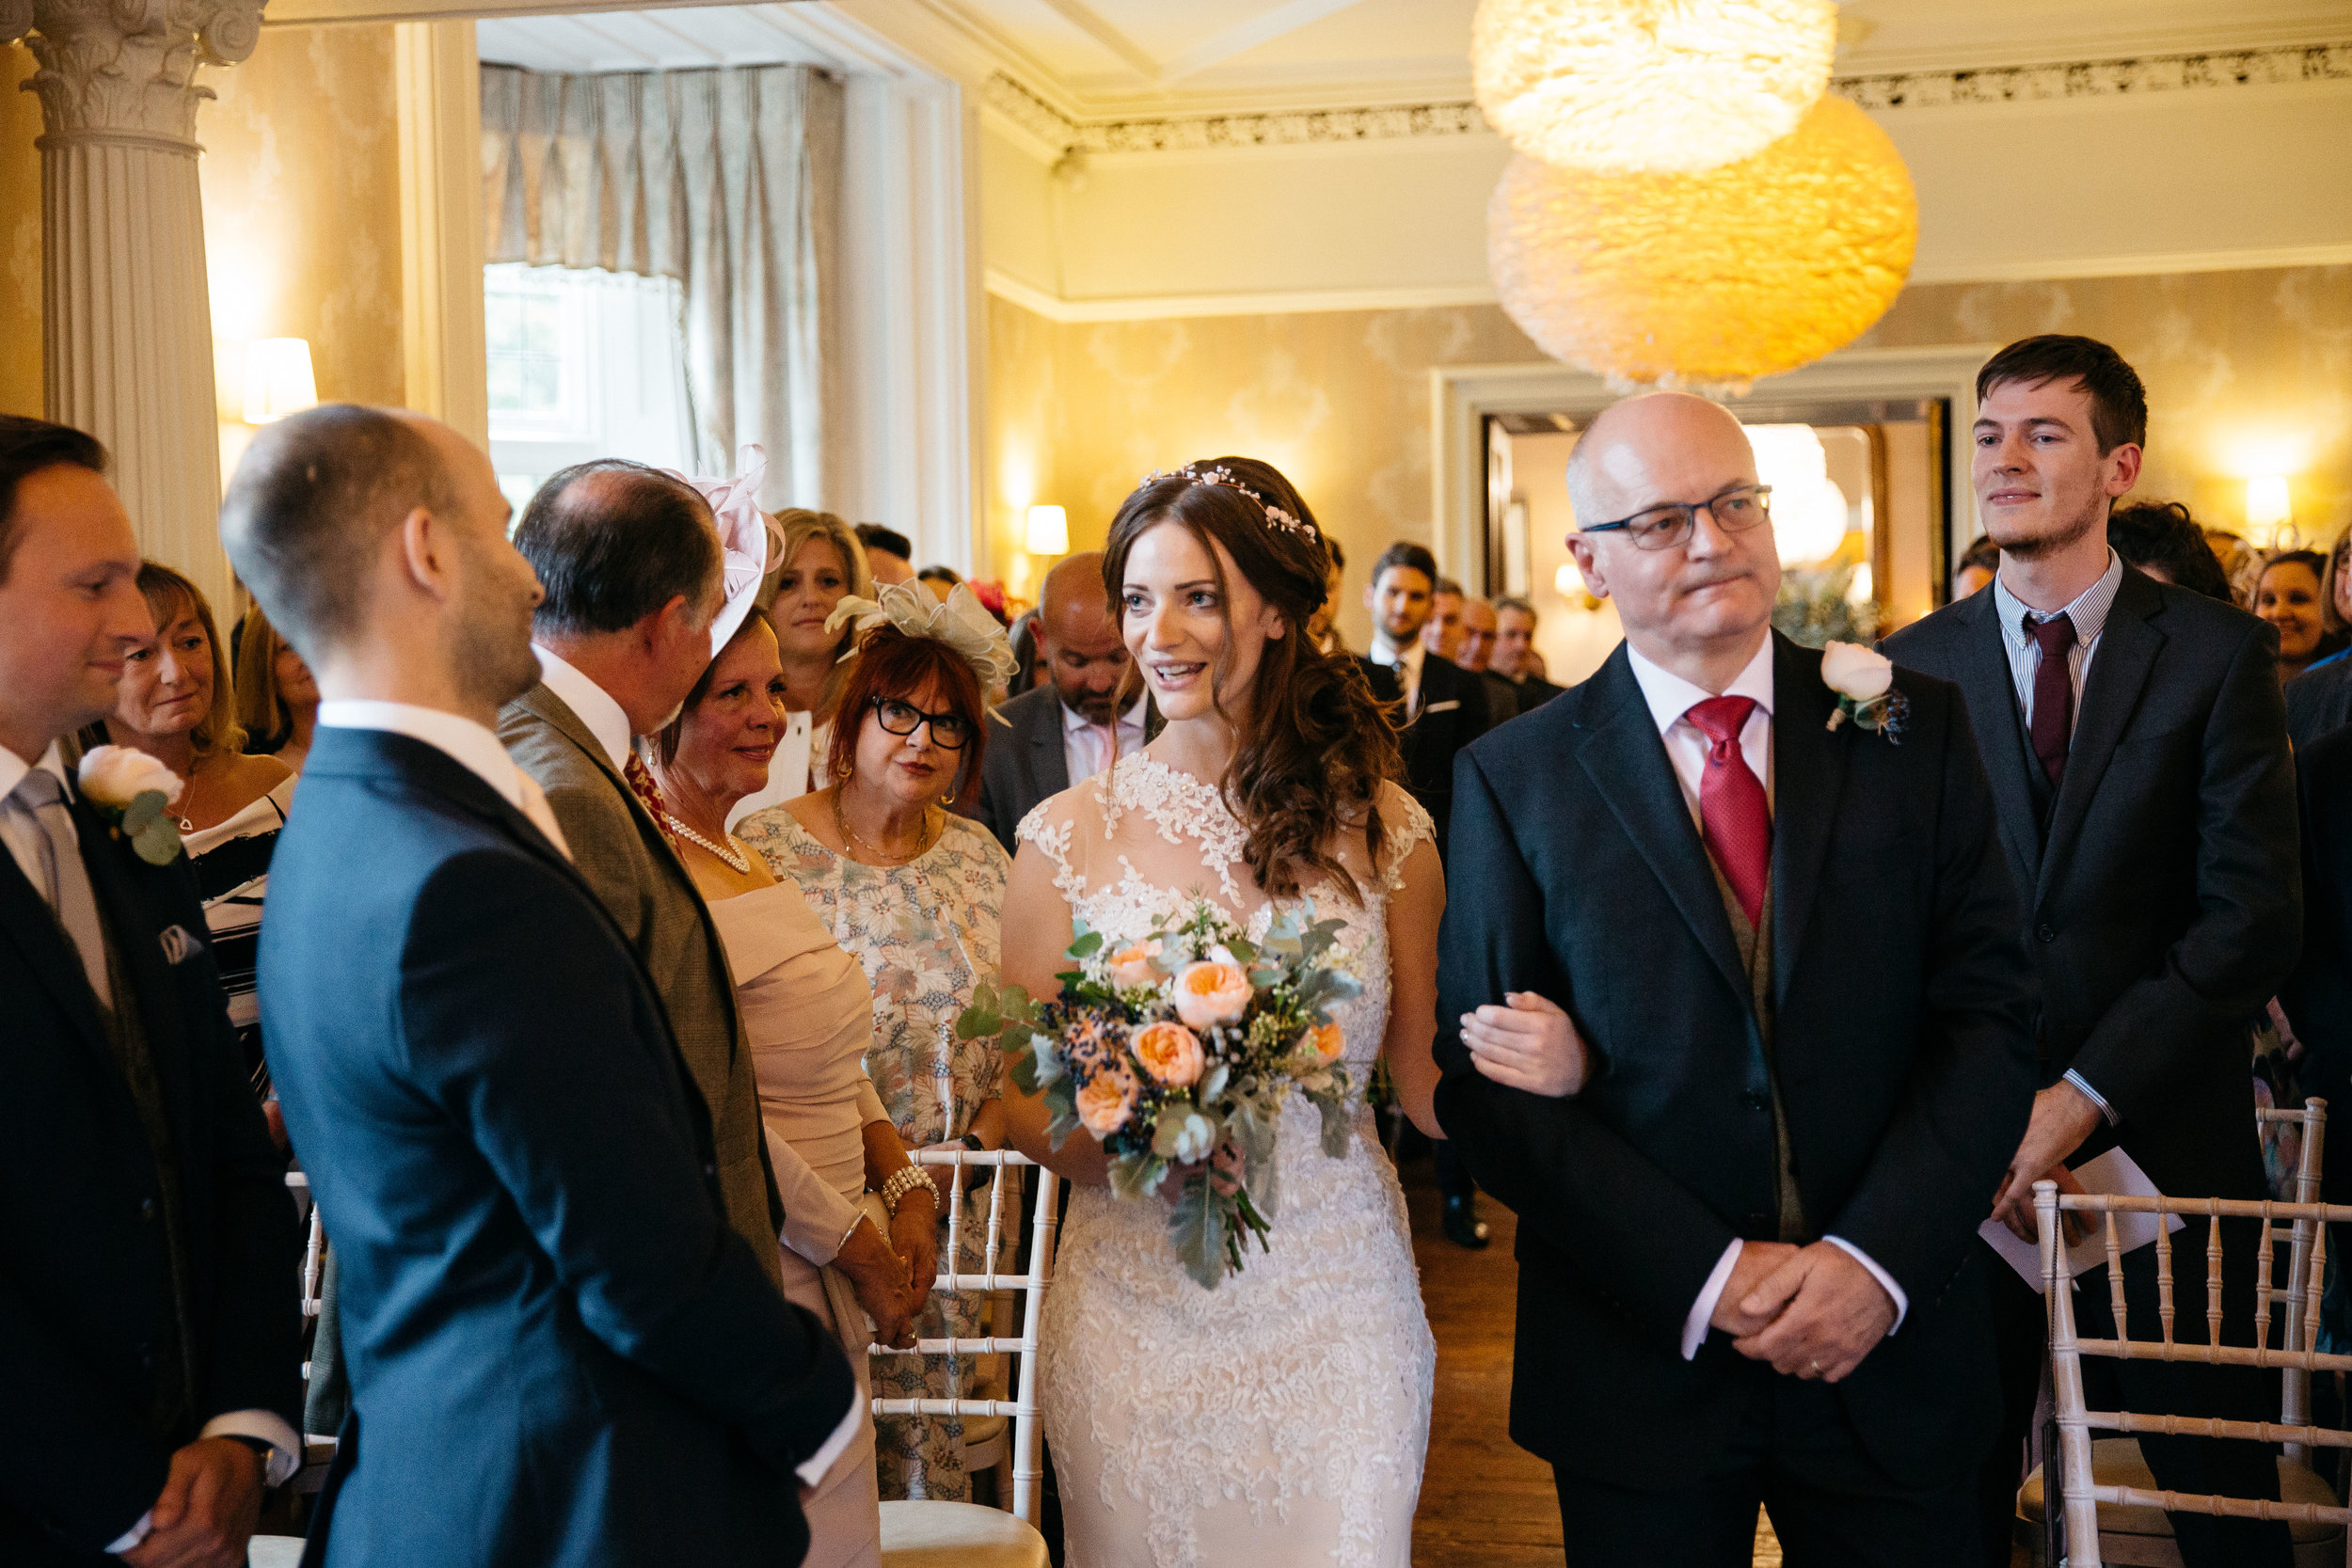 The first look bride and groom at Falcon Manor Wedding Photography Yorkshire